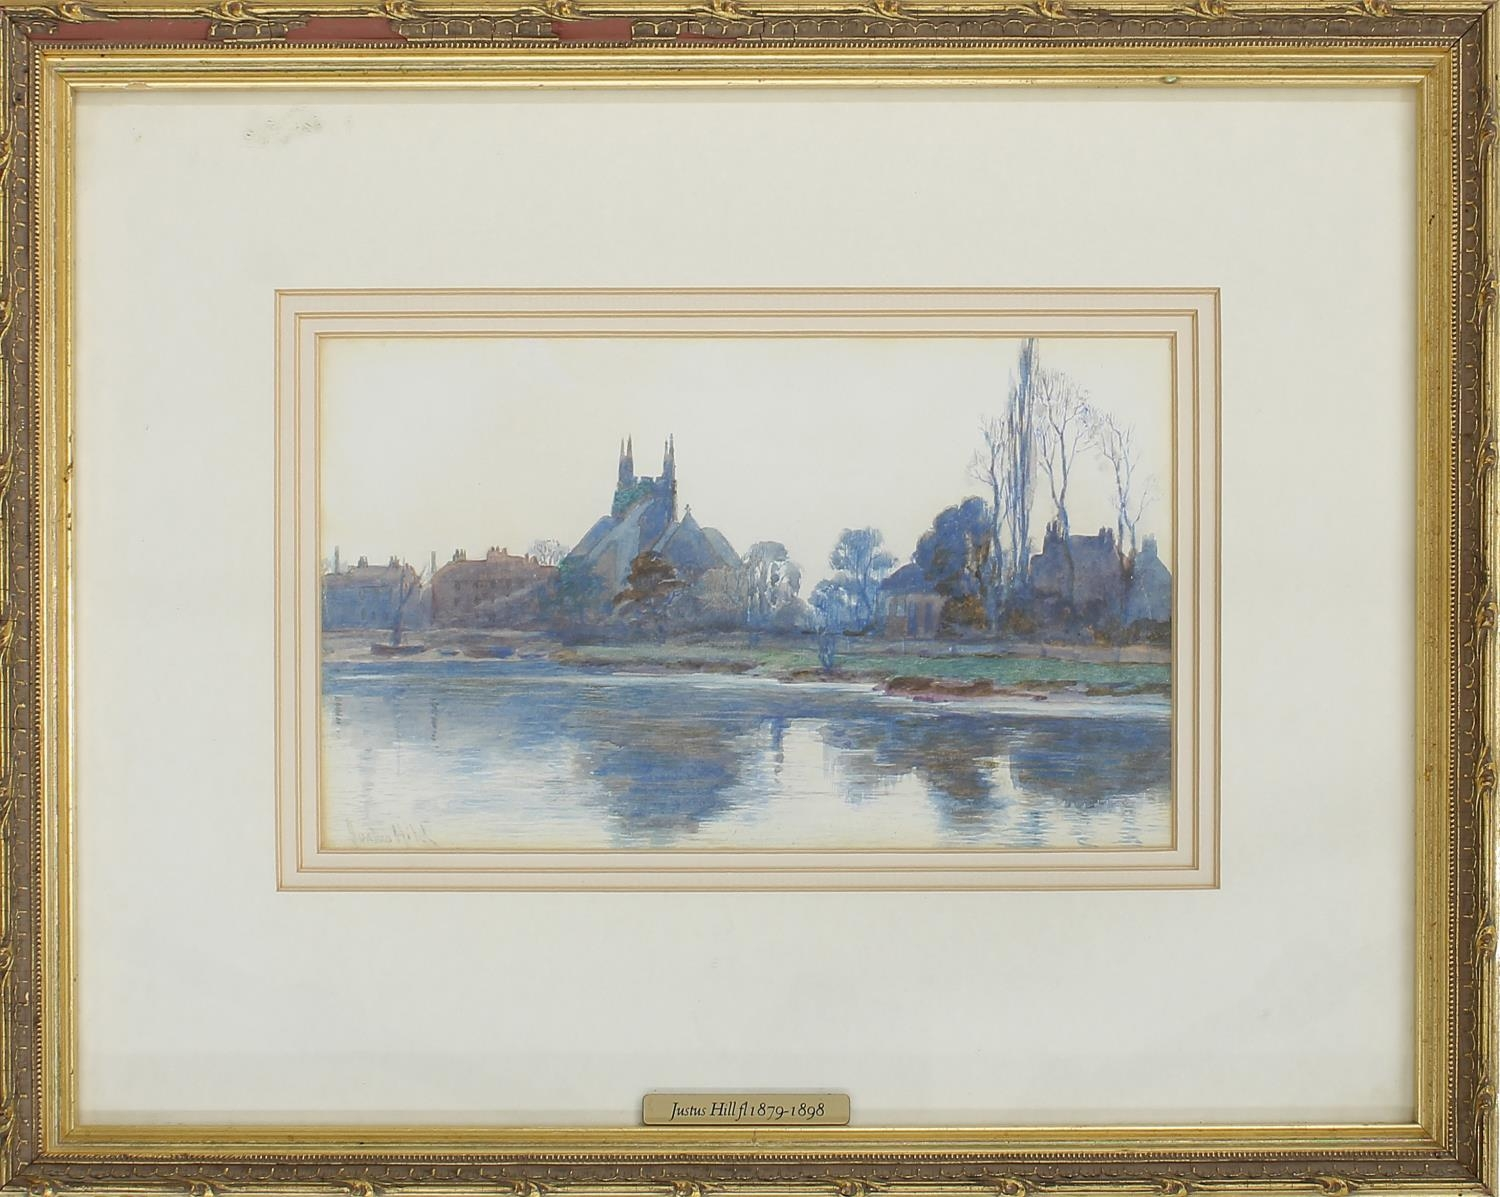 Justus Hill (fl 1879-1898) -Thameside village scene, signed also in inscribed with the artist's